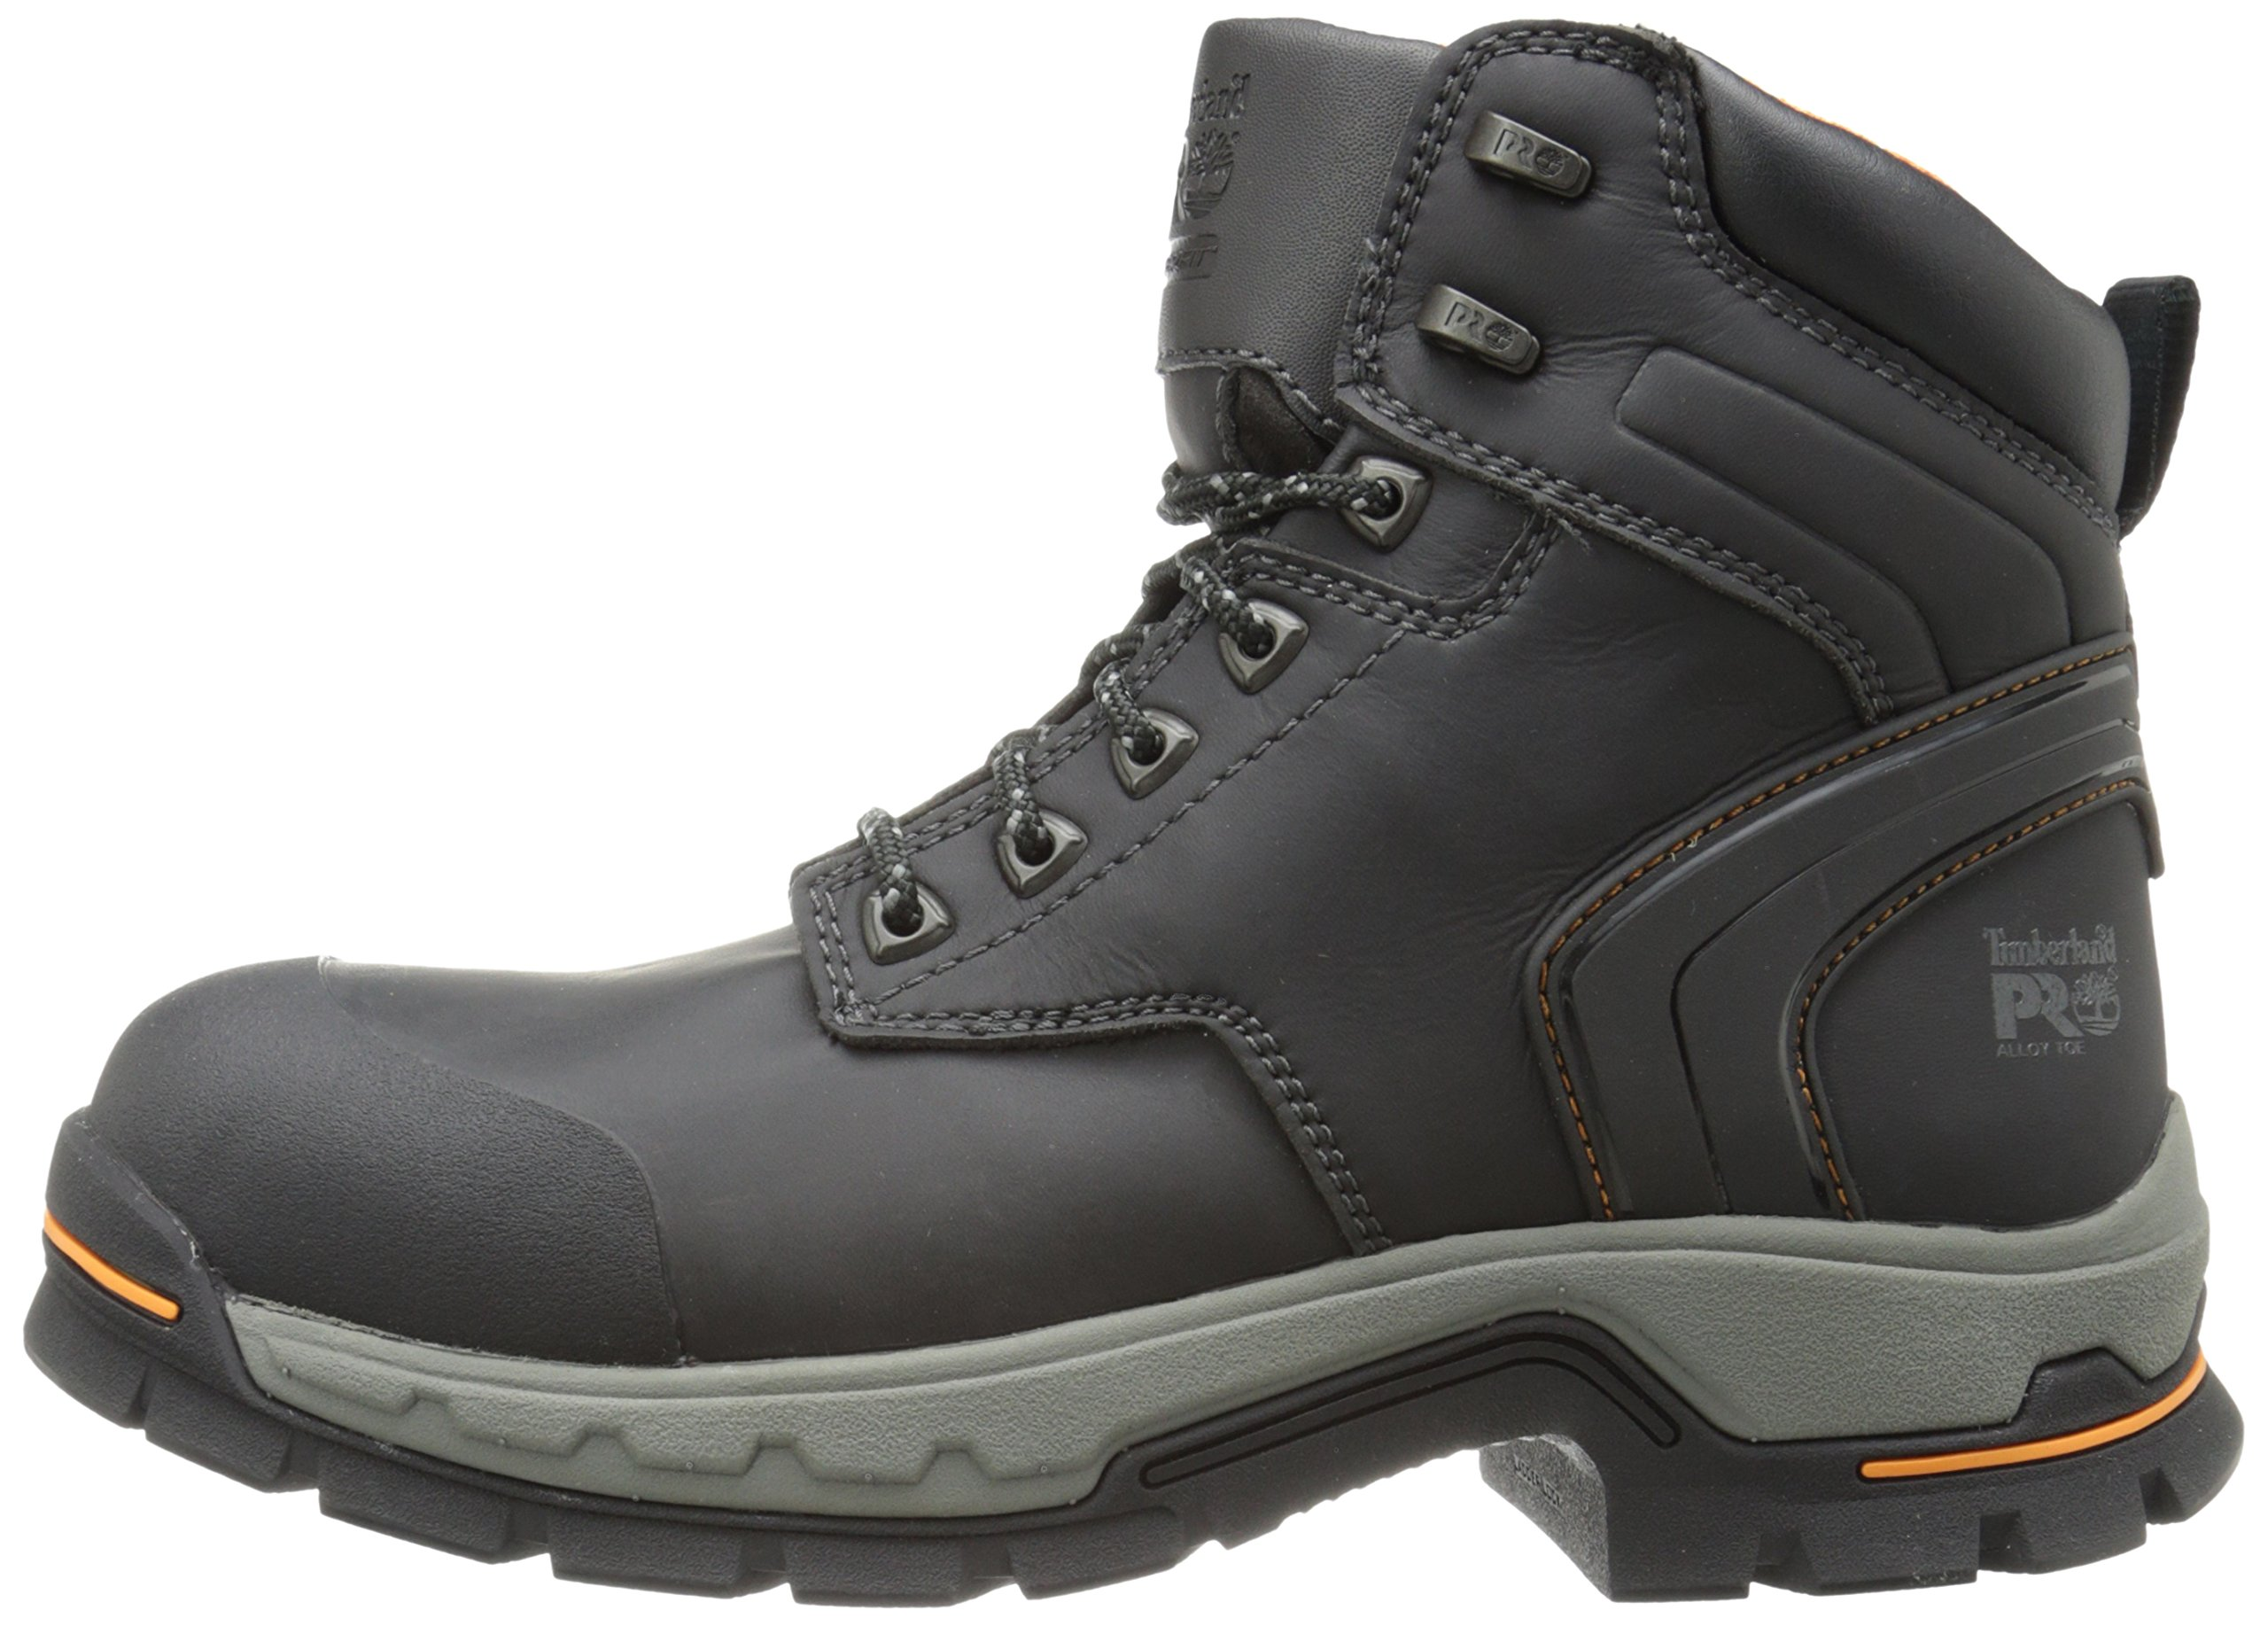 Timberland PRO Men's 6 Inch Stockdale Grip Max Alloy Toe Work and Hunt Boot, Black Microfiber, 5.5 M US by Timberland PRO (Image #5)